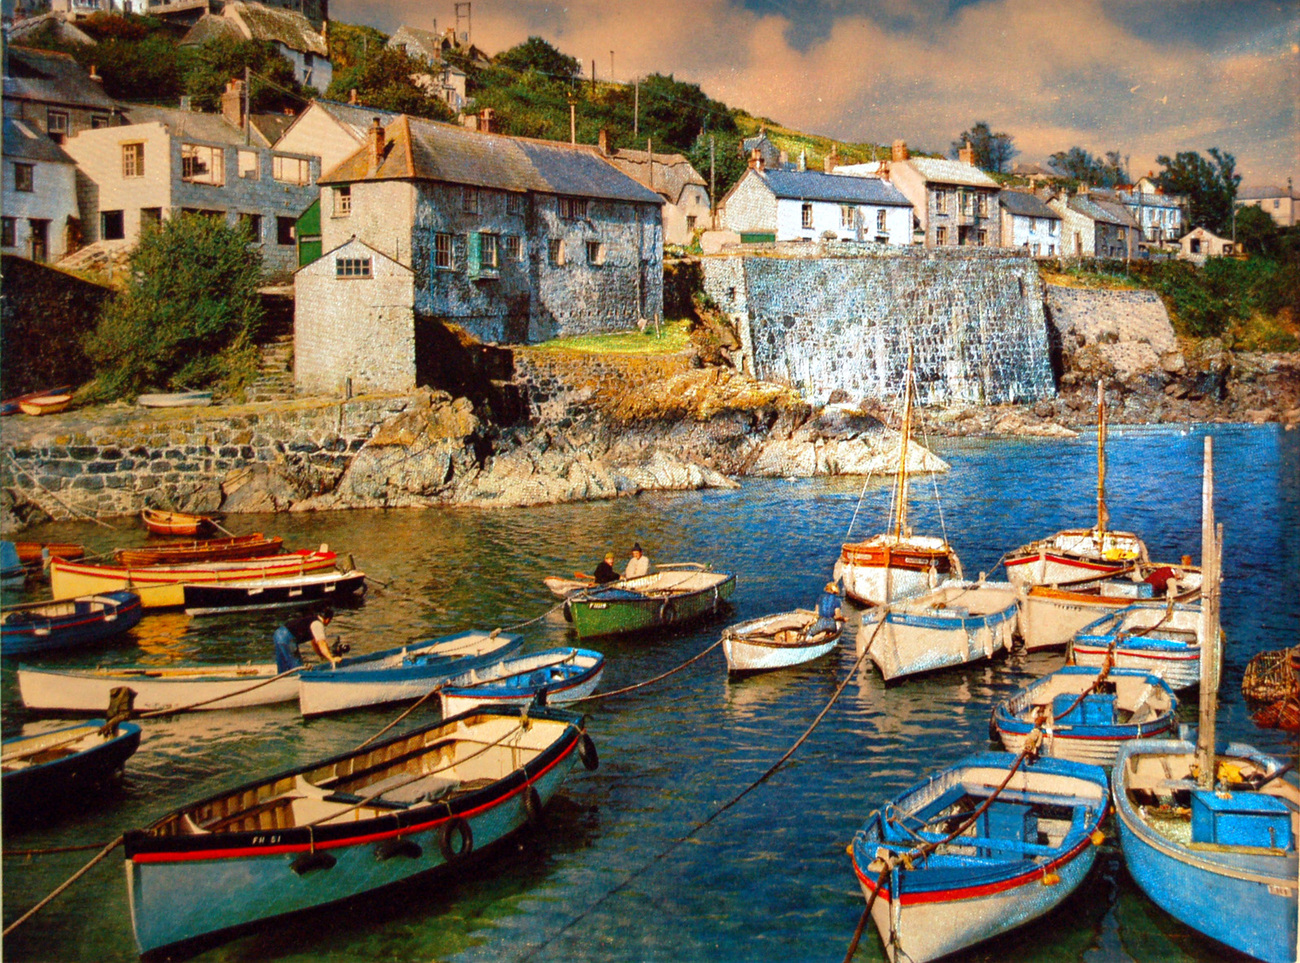 86 86m small boats at coverack